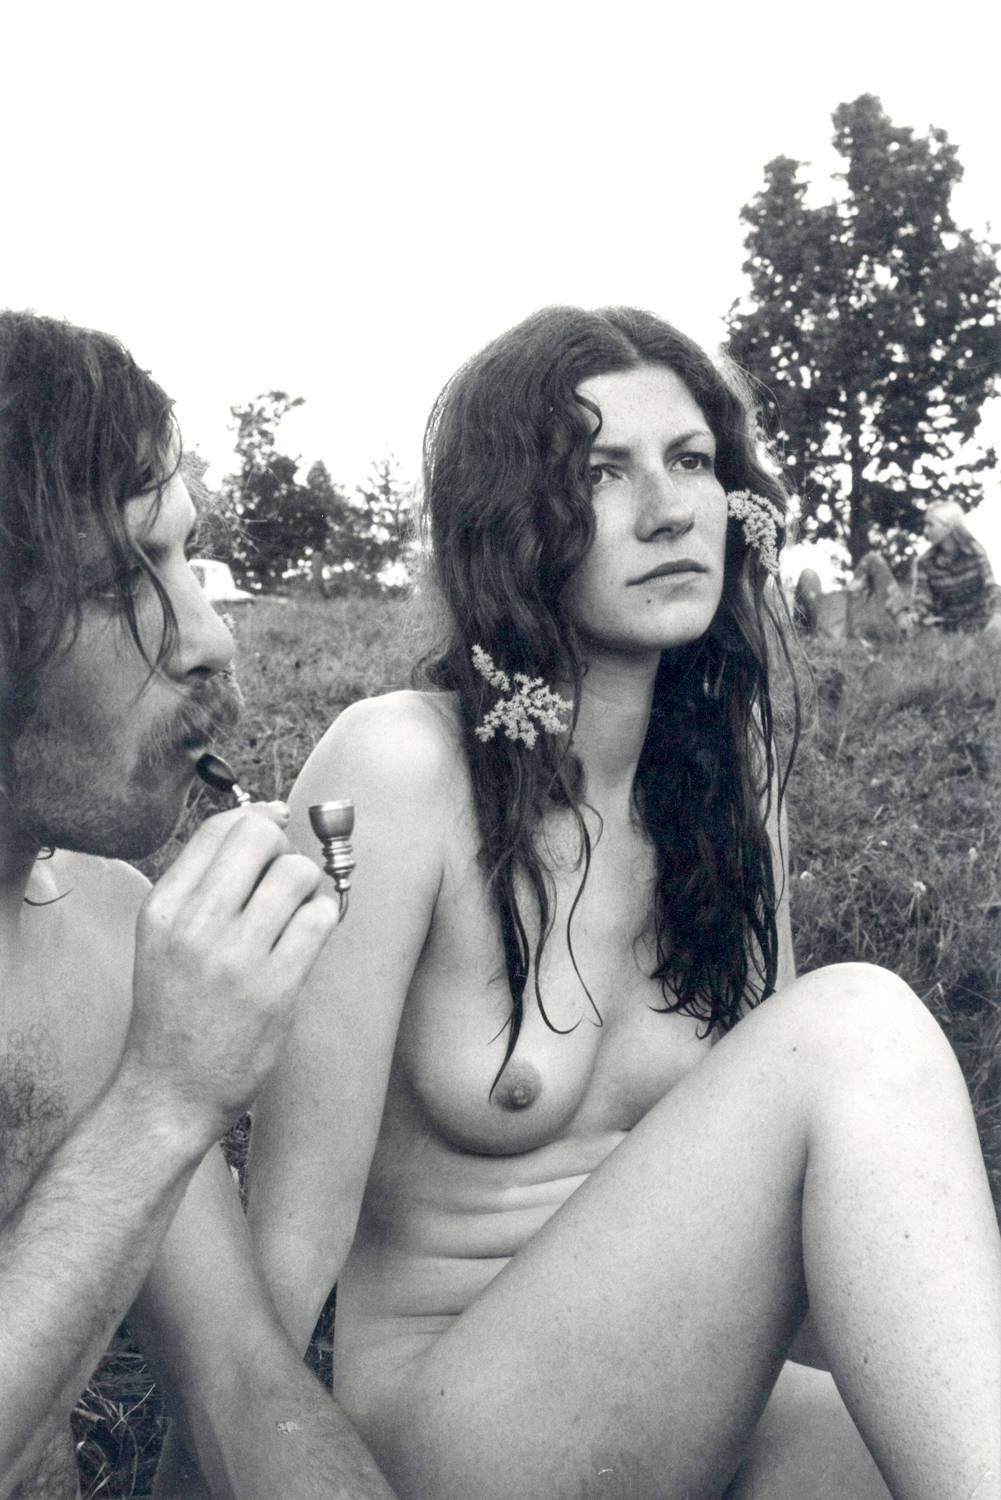 Burk Uzzle - Woodstock Man And Pipe, Naked Woman For -1804